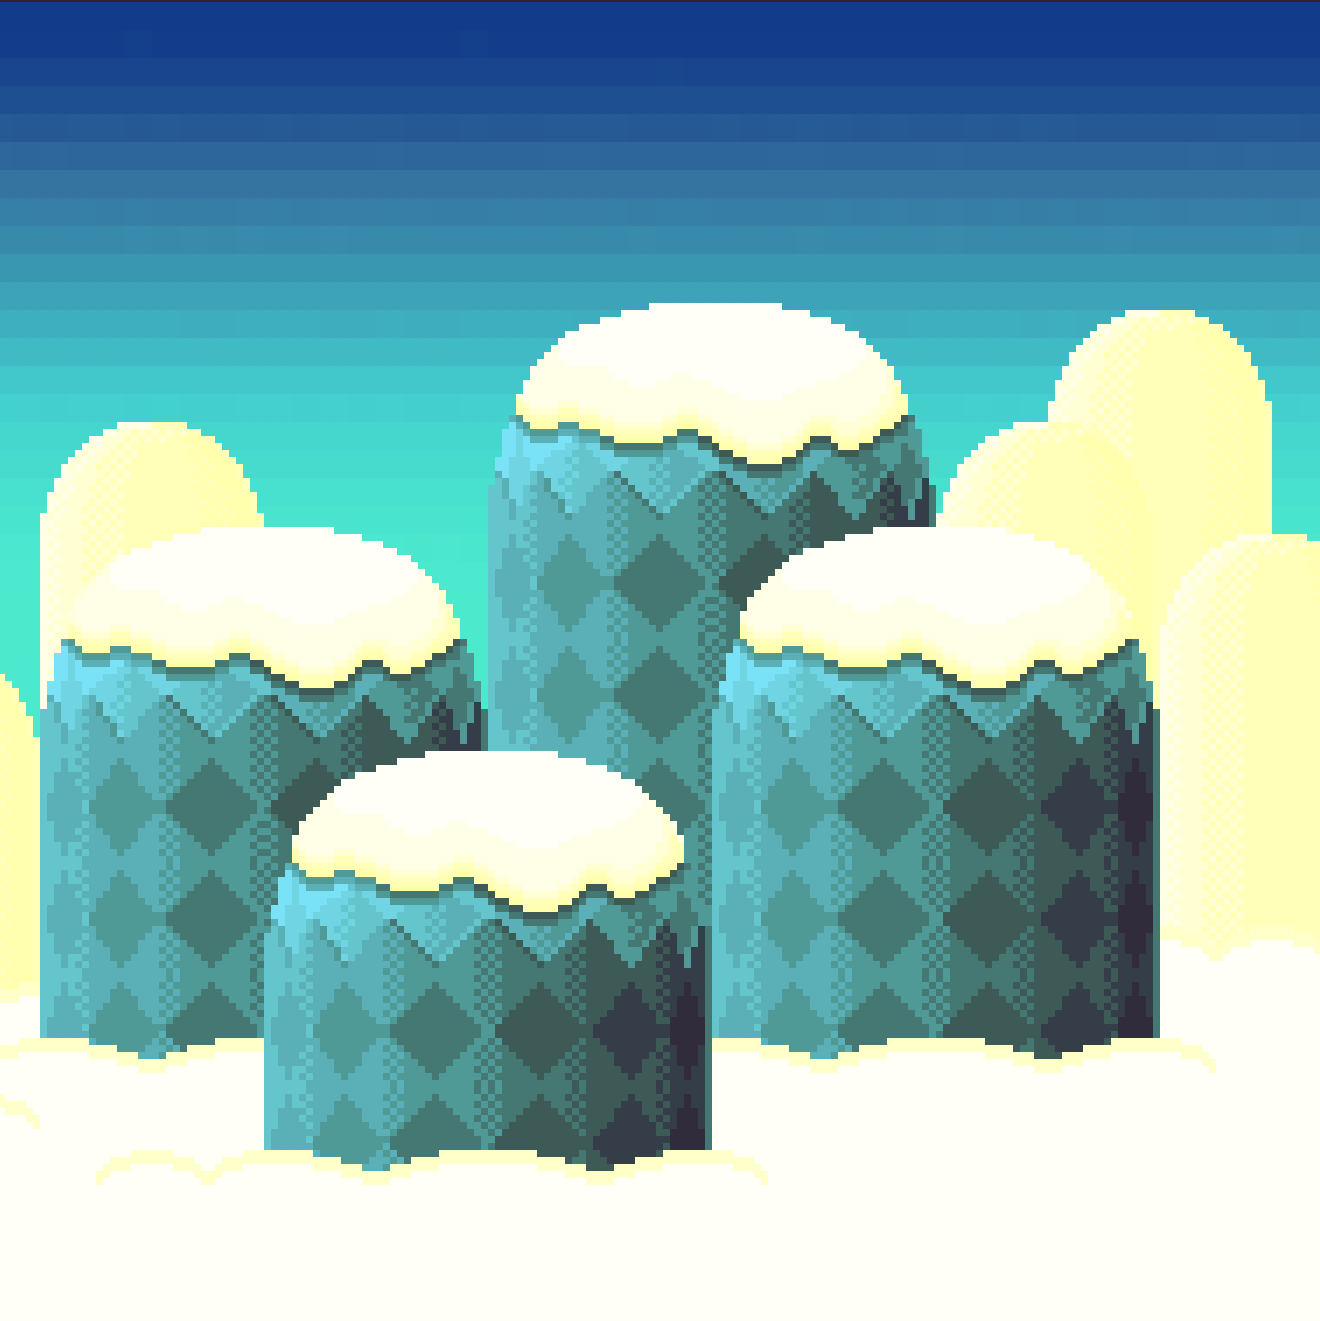 winter-music-ice-level-vgm.png